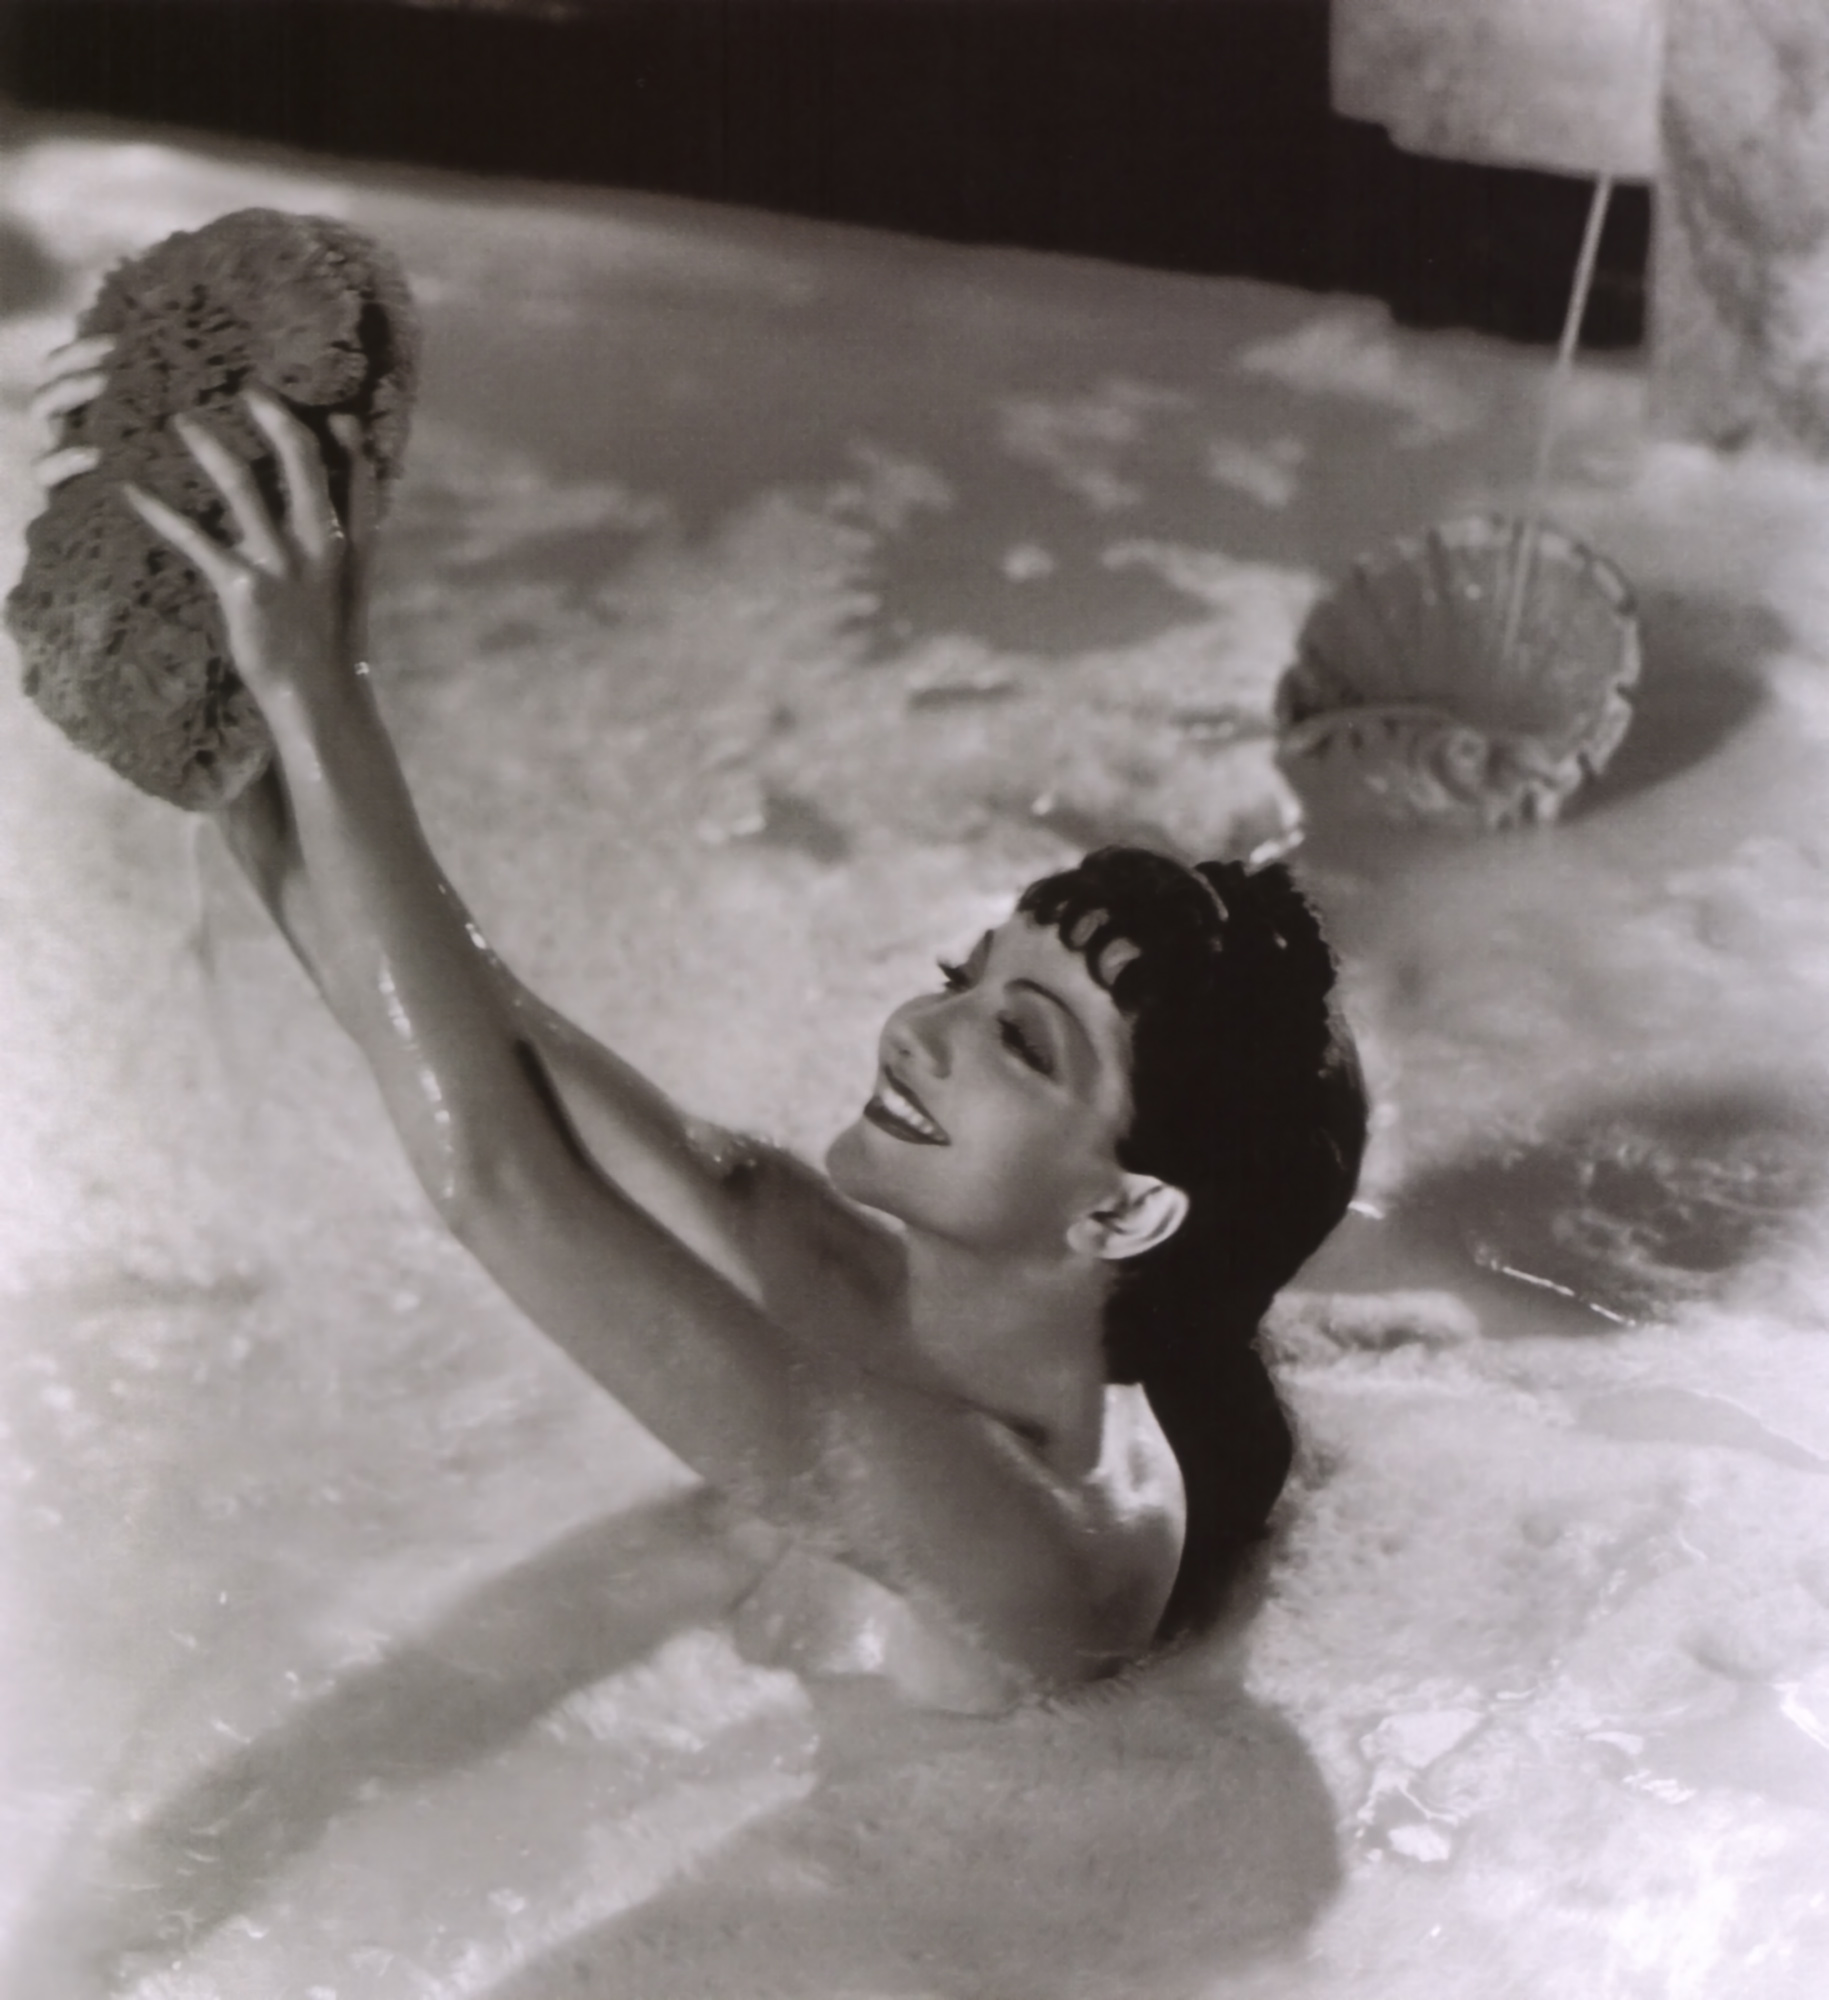 Actress beauty tip #8: Milk bath